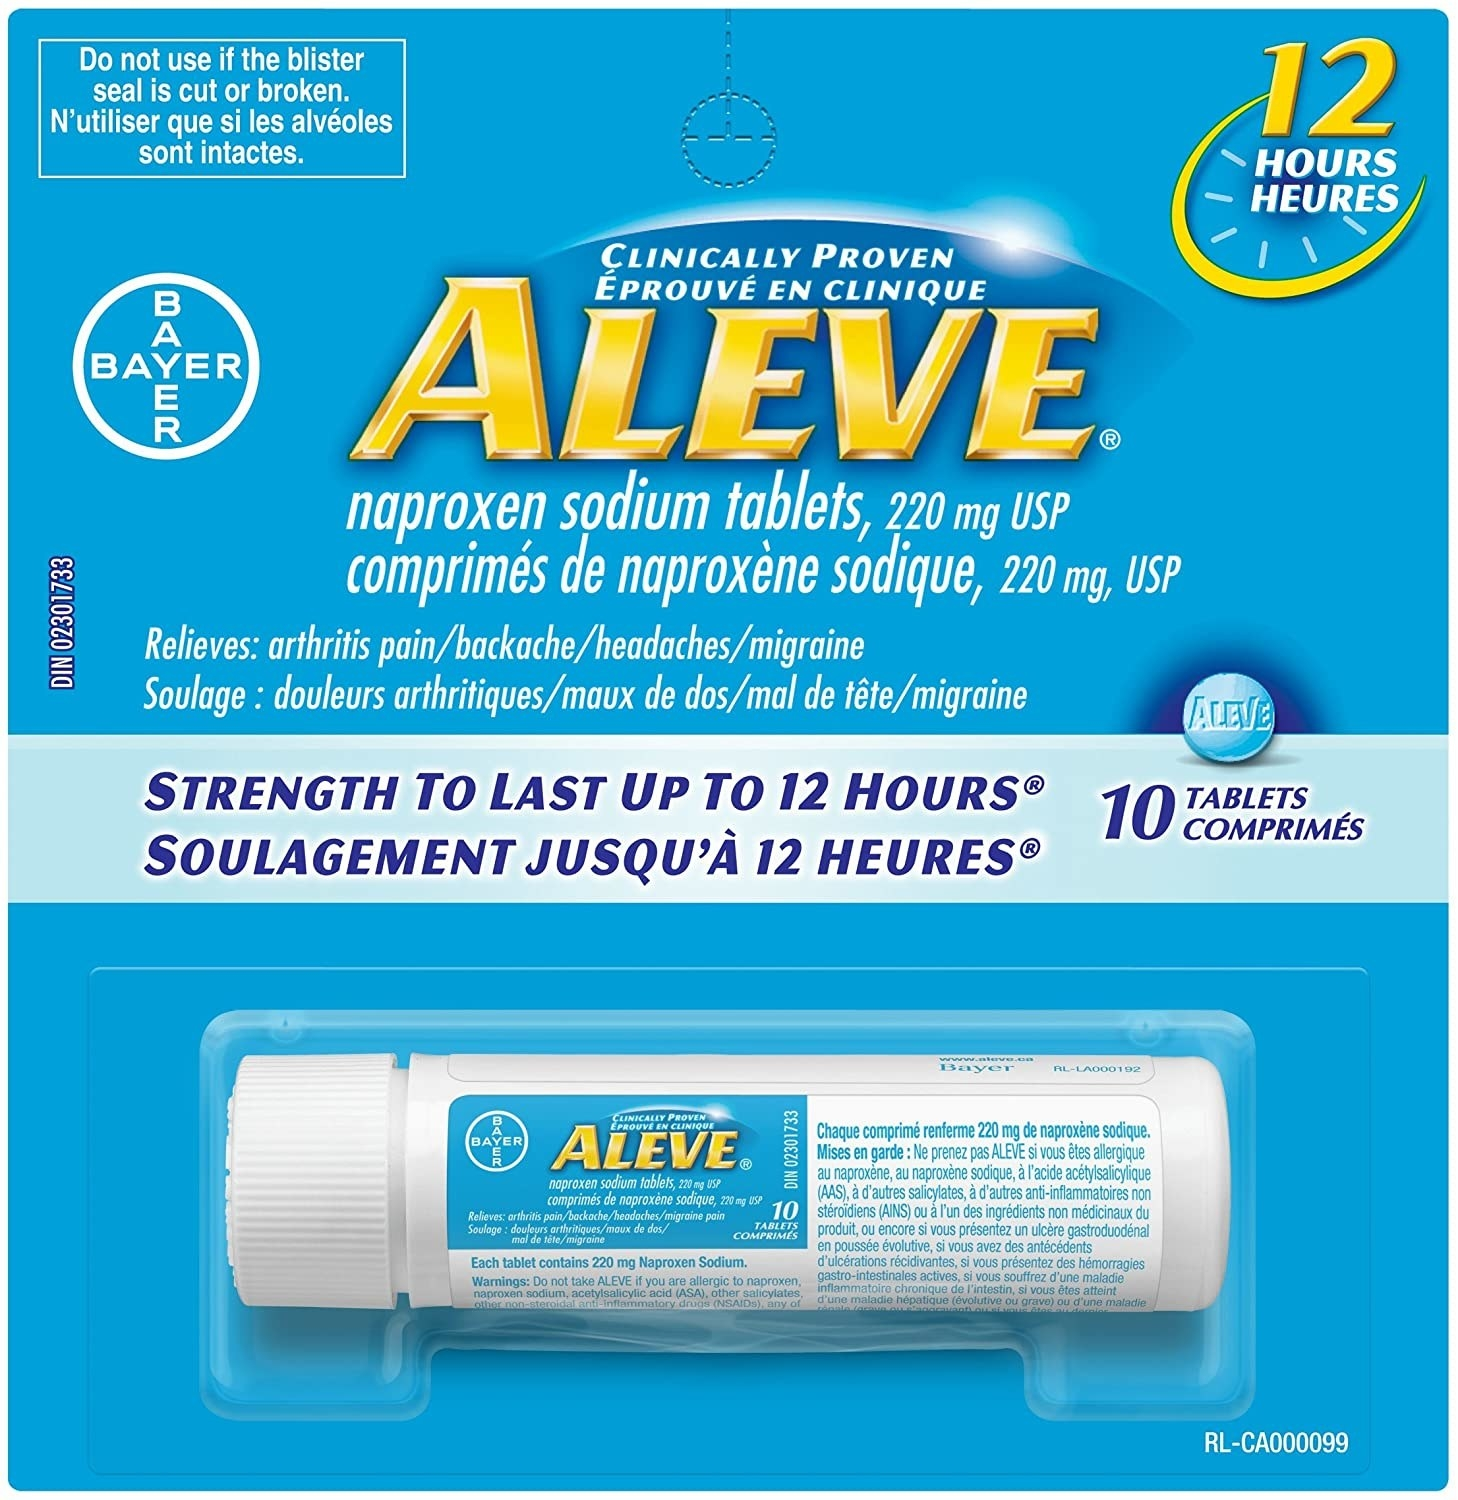 The travel bottle of naproxen in its package